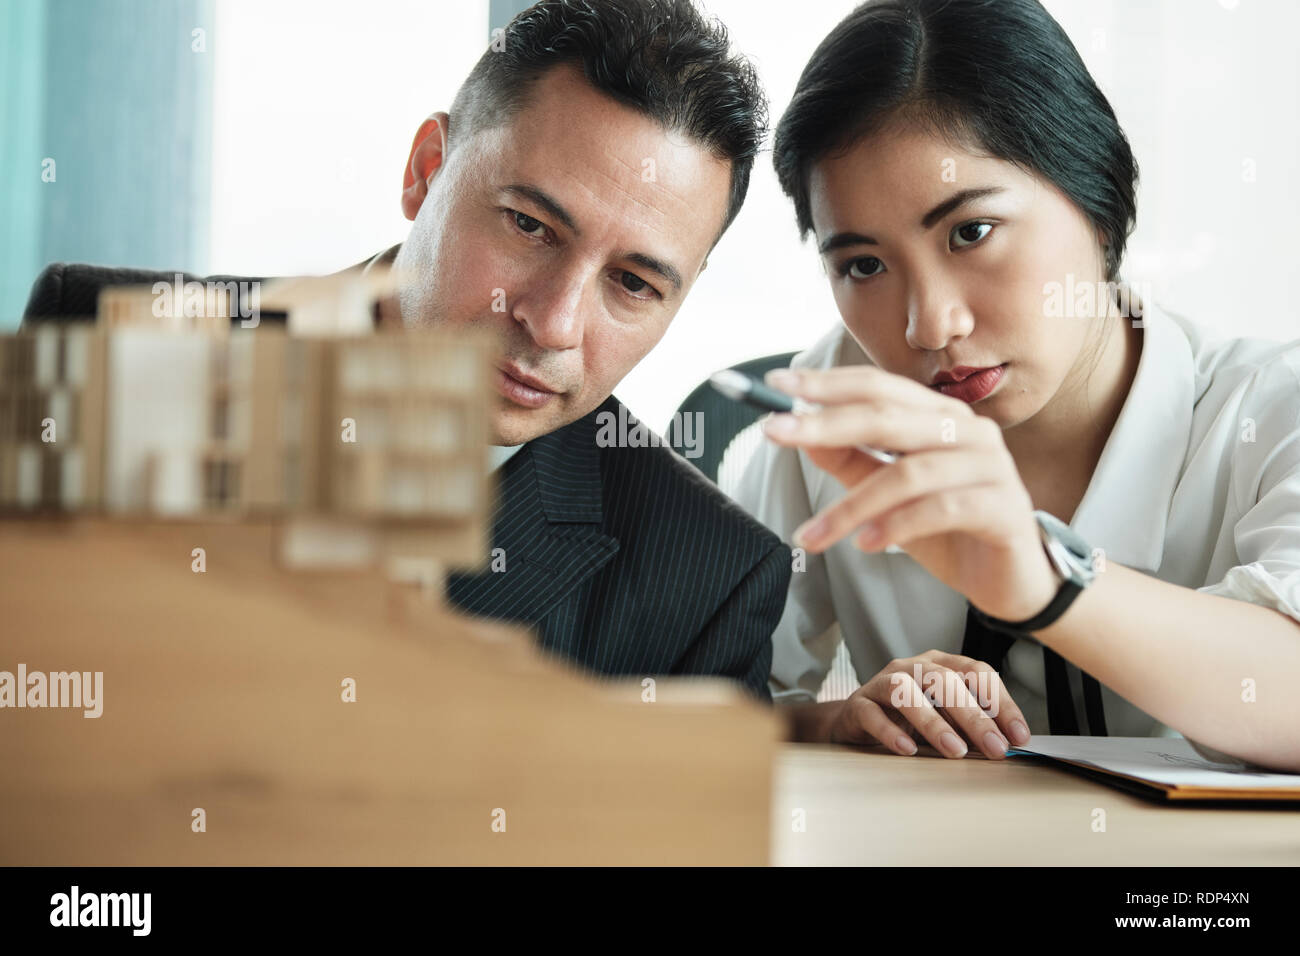 Confident Businessman Looking At Architecture Miniature House Project - Stock Image